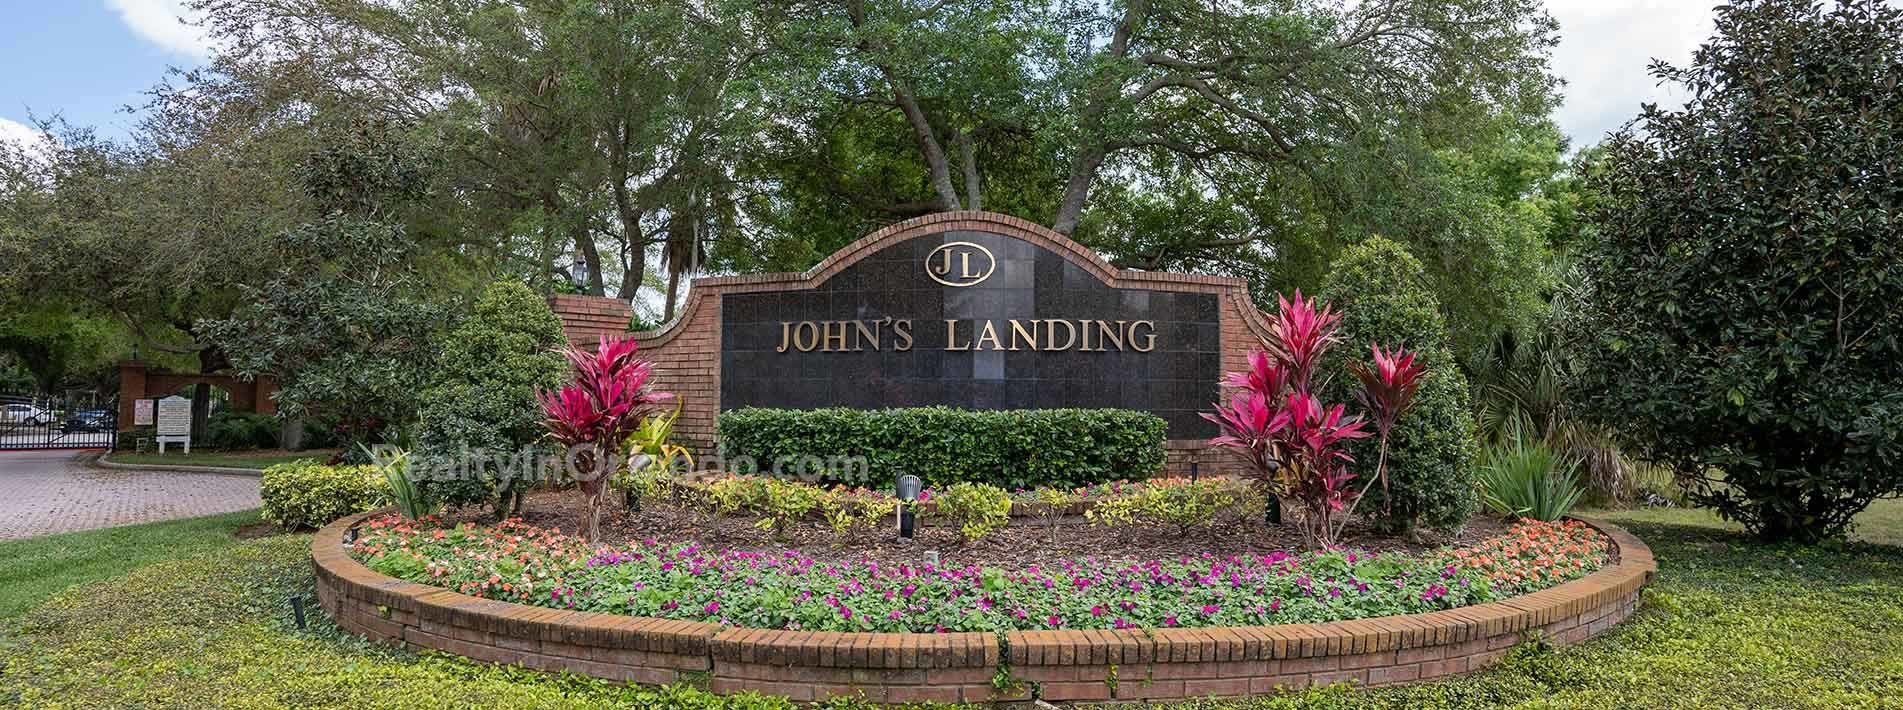 John's Landing Winter Garden Real Estate